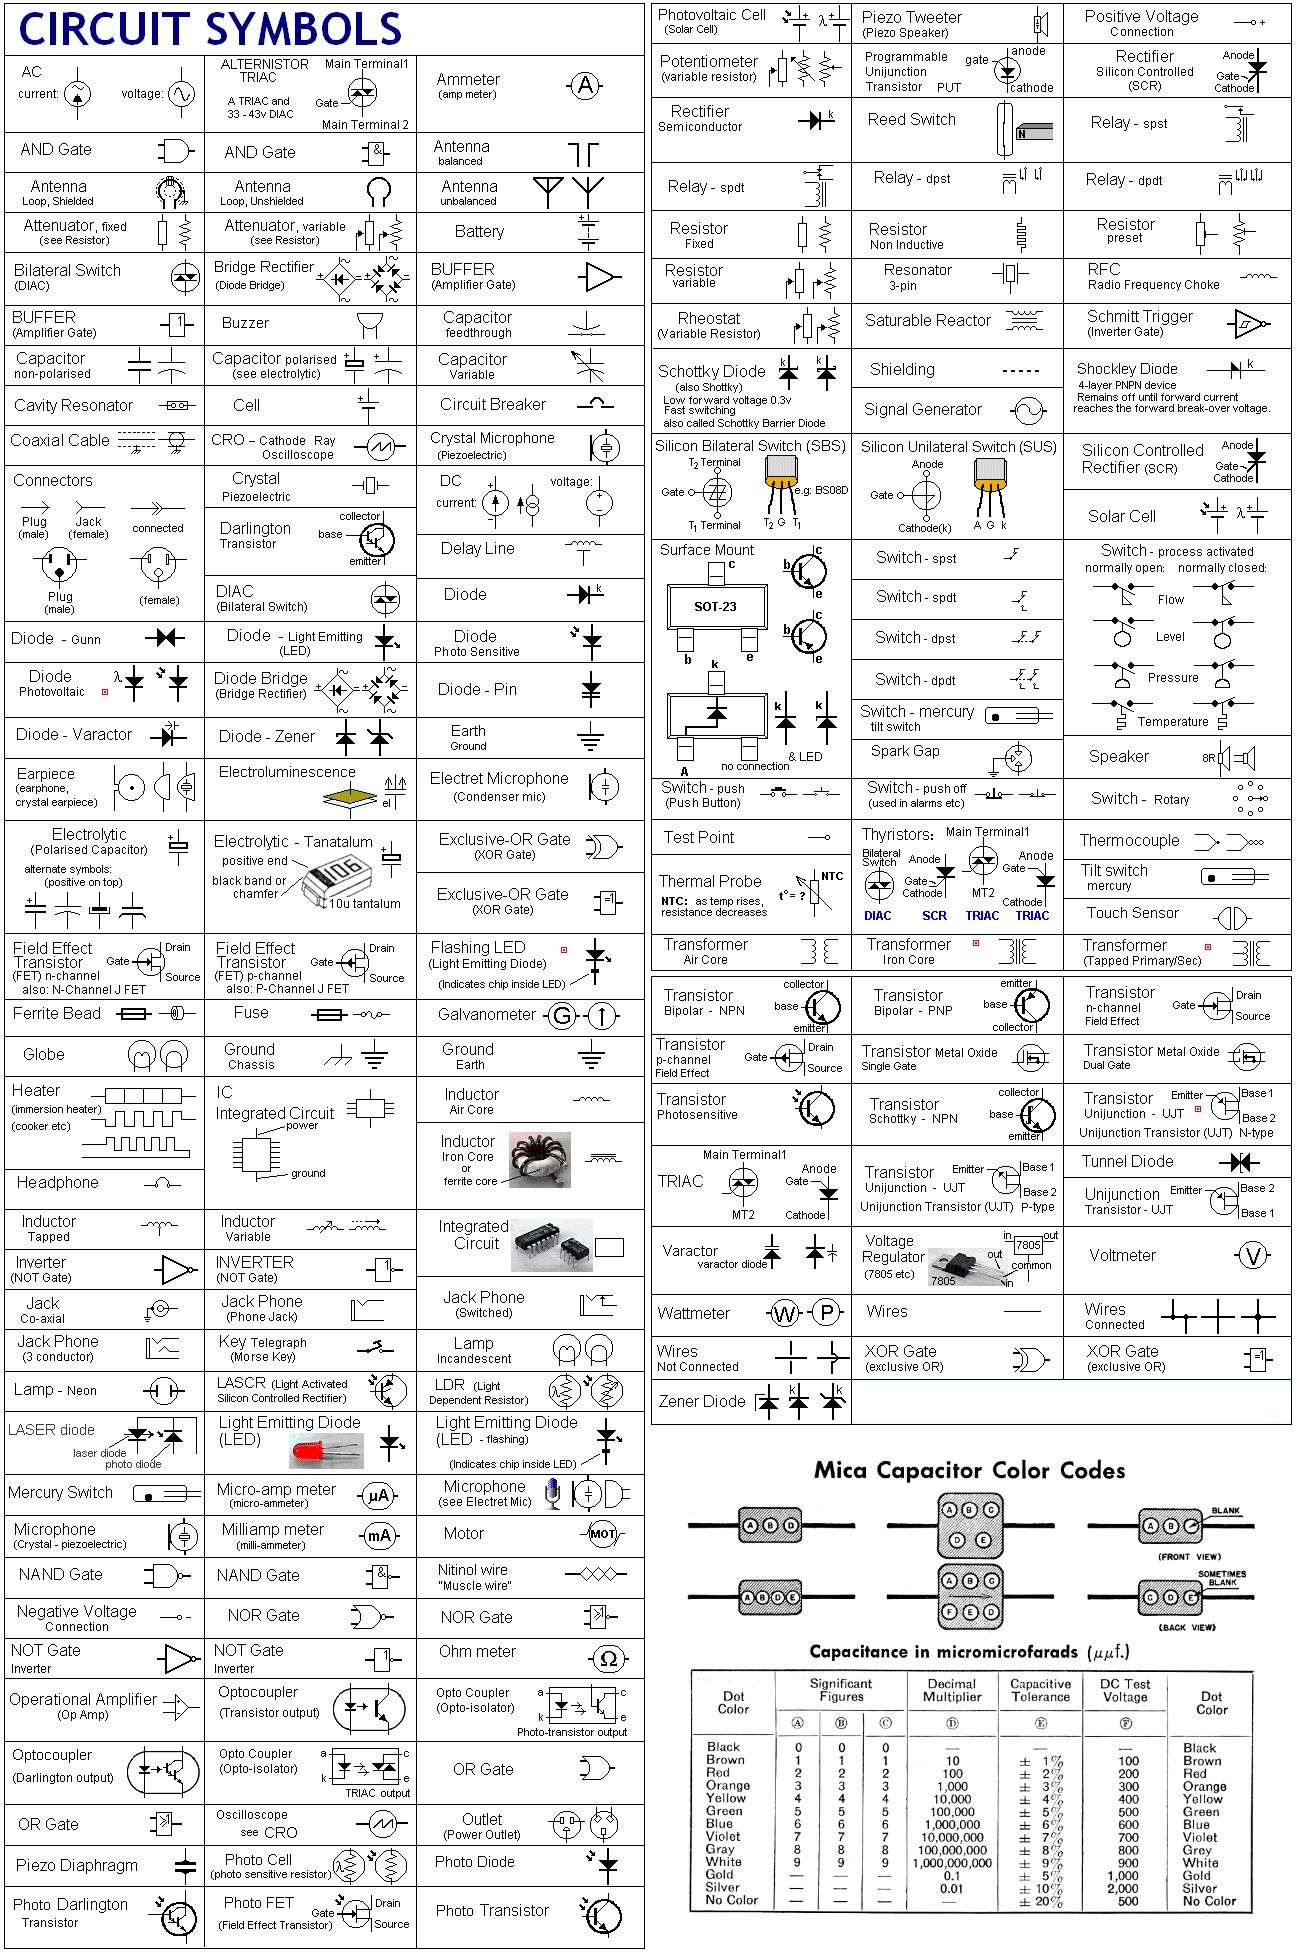 Schematic symbols chart electric circuit  considerably complete alphabetized table also rh pinterest